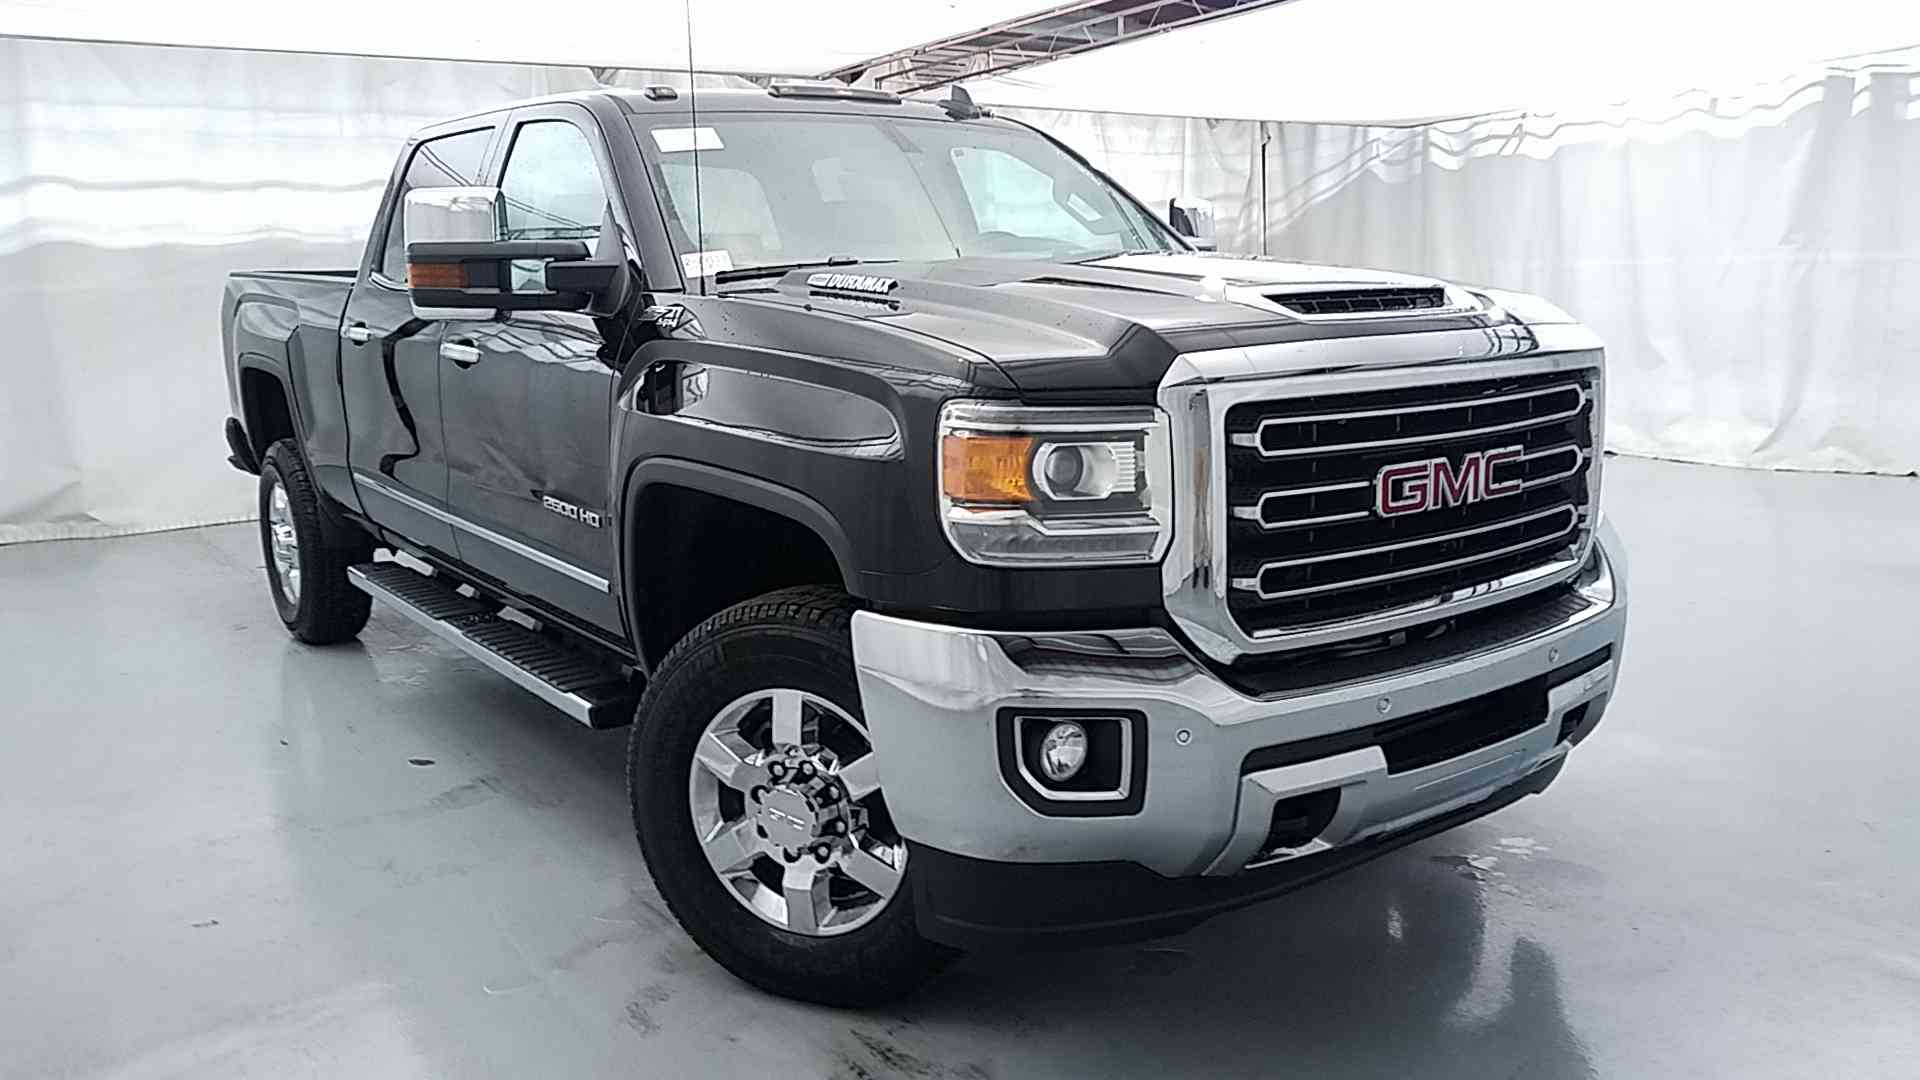 New Gmc Sierra 2500hd At Ross Downing In Hammond And Gonzales